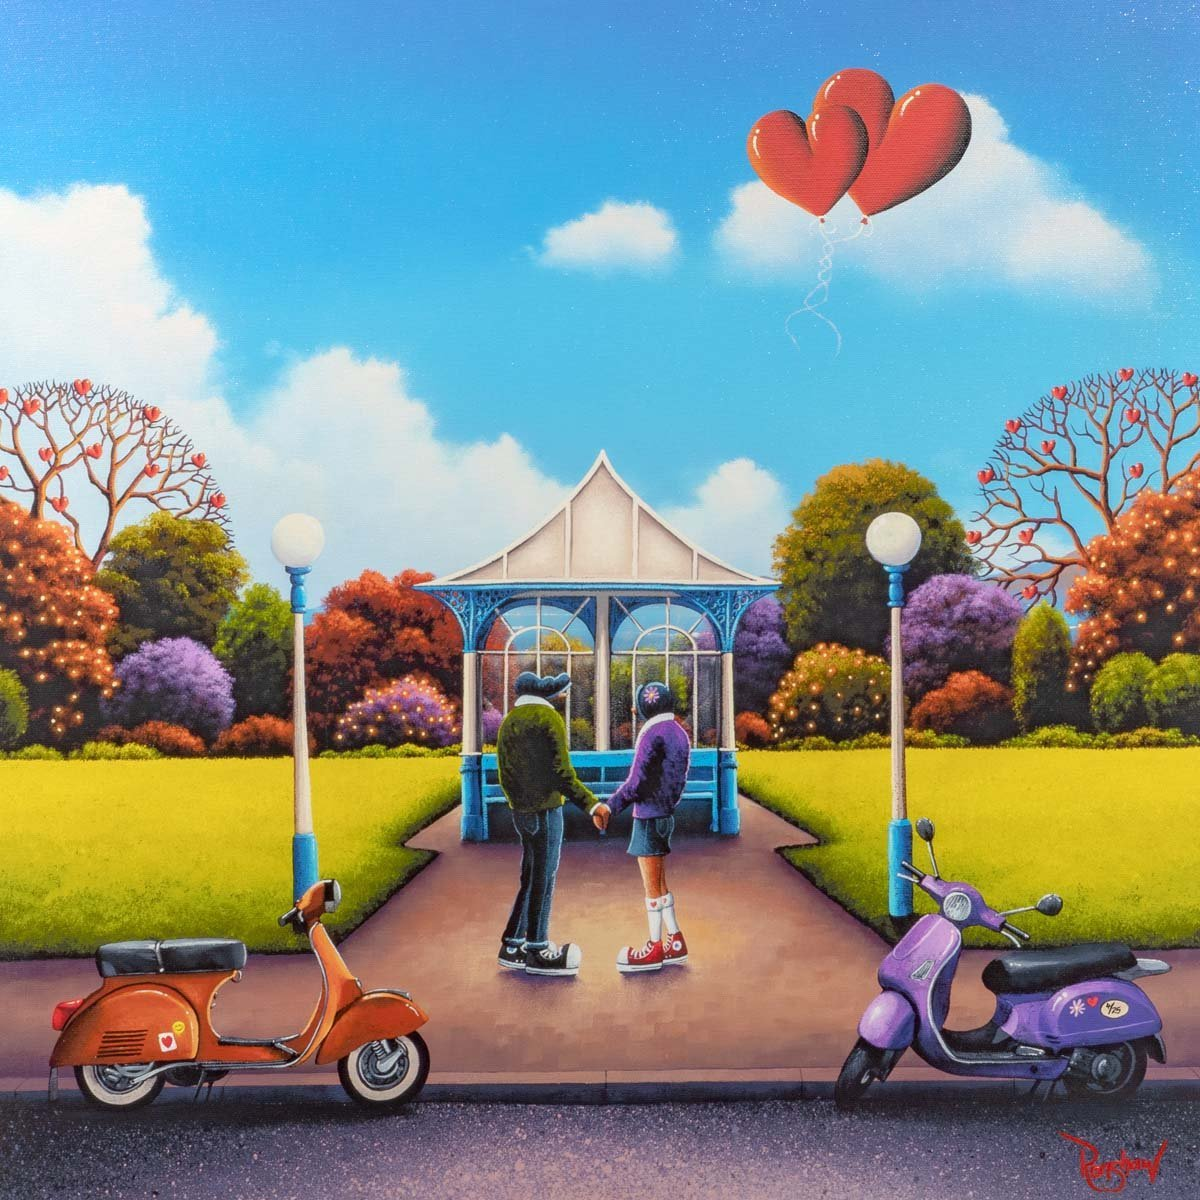 Our First Date - Edition David Renshaw Edition Number 4